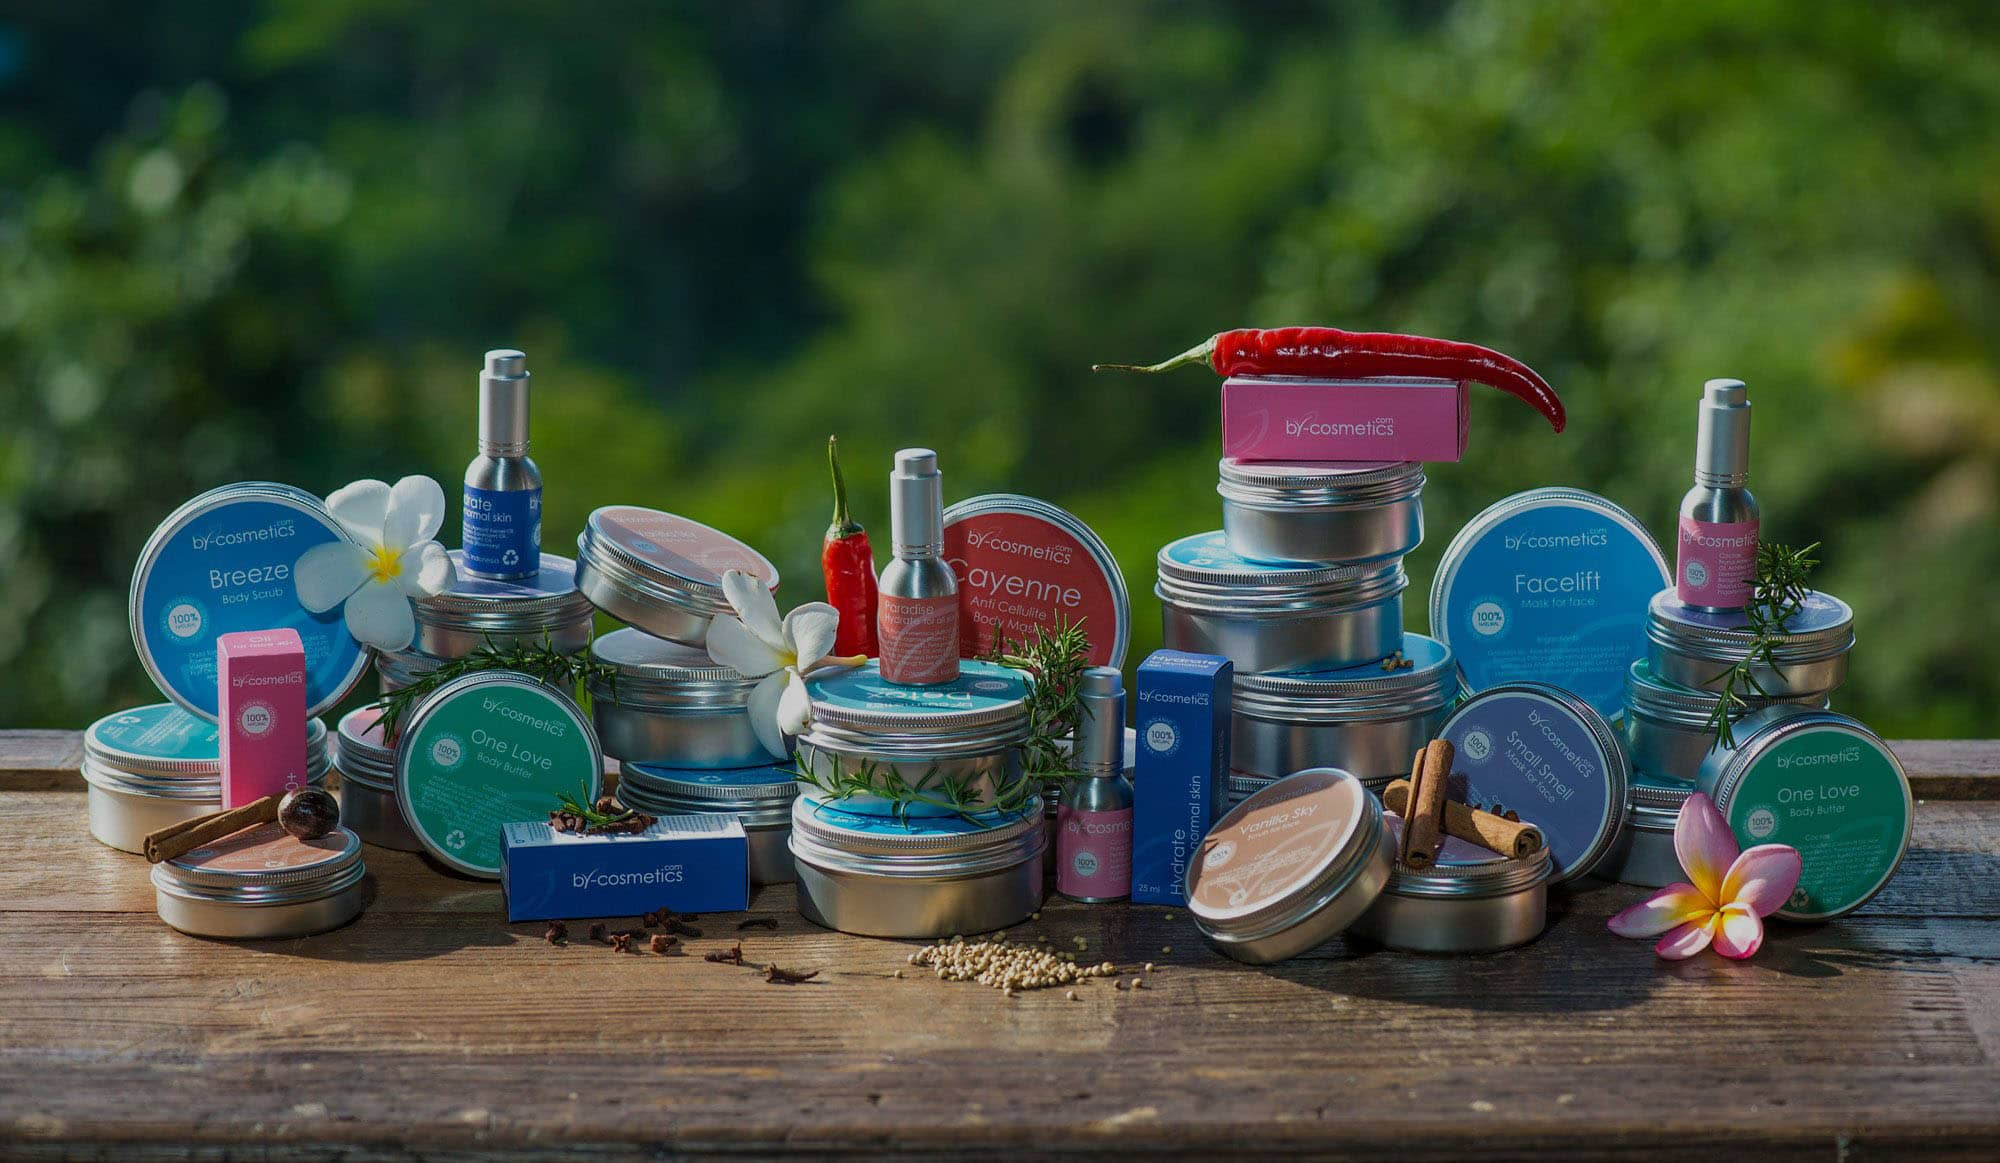 factory natural organic cosmetics based in Bali